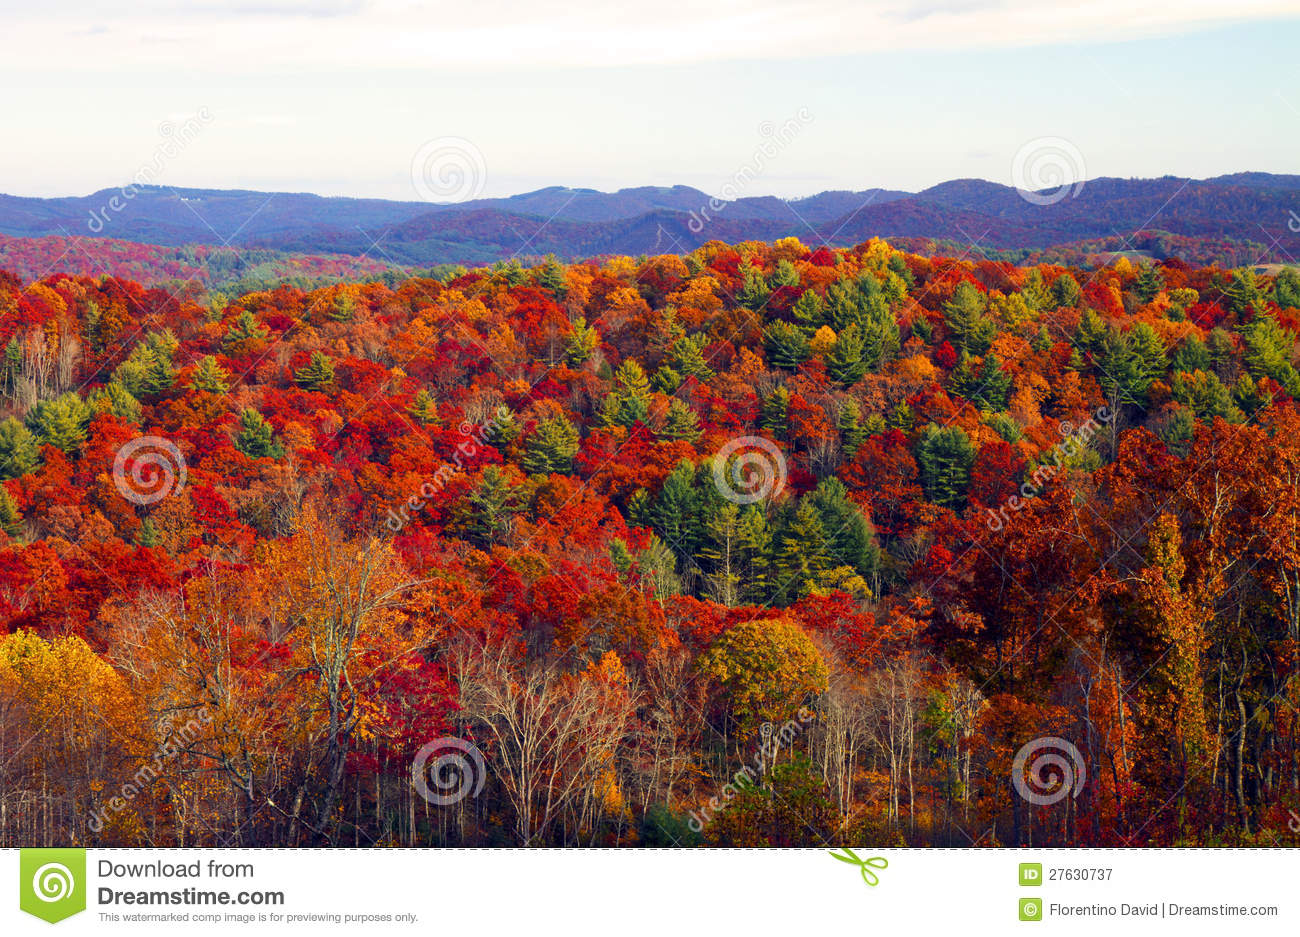 ... in the appalachian mountains in north carolina showing fall colors